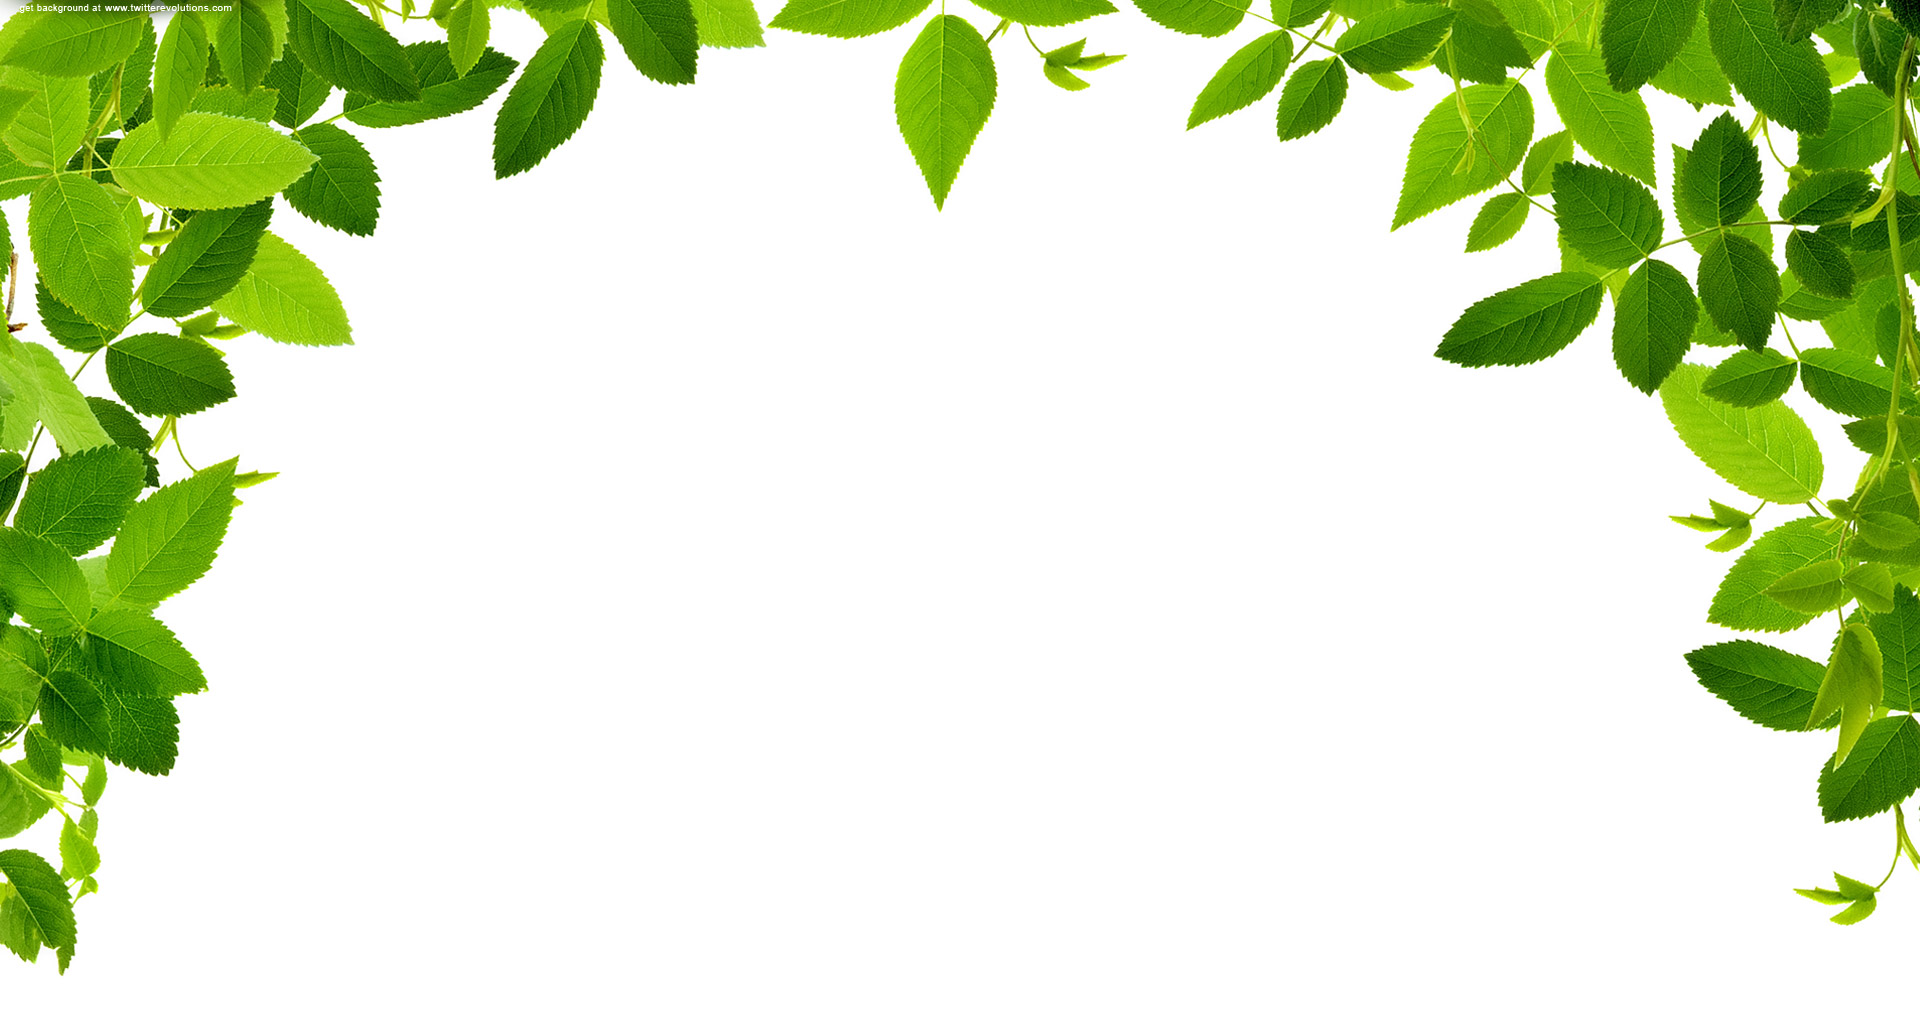 Free Tree Frame Cliparts, Download Free Clip Art, Free Clip.